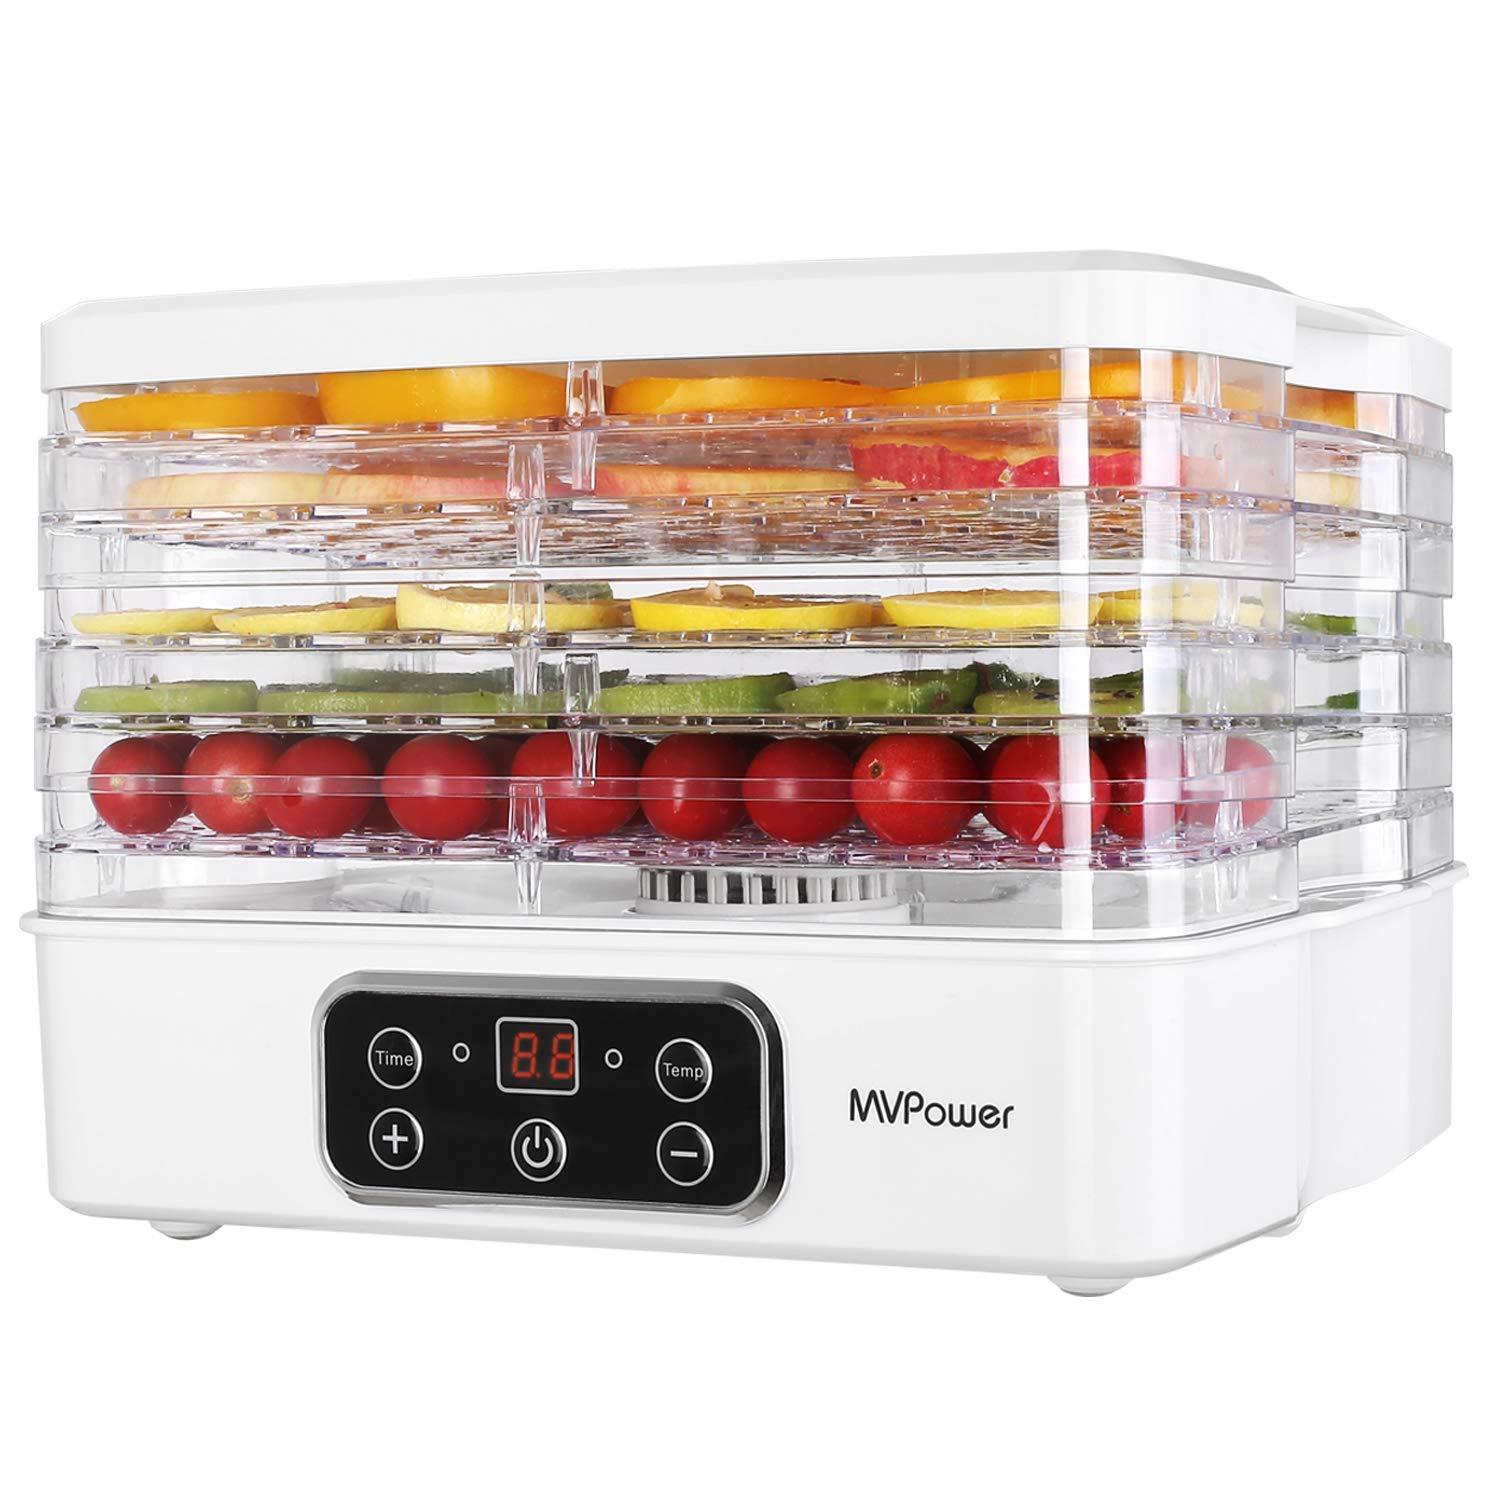 MVPower Food Dehydrator Machine Electric Food Dryer with Digital Temperature Controller, Professional Food Preserver for Beef Jerky, Dried Fruits, Vegetables, Herbs, Bread & Nuts